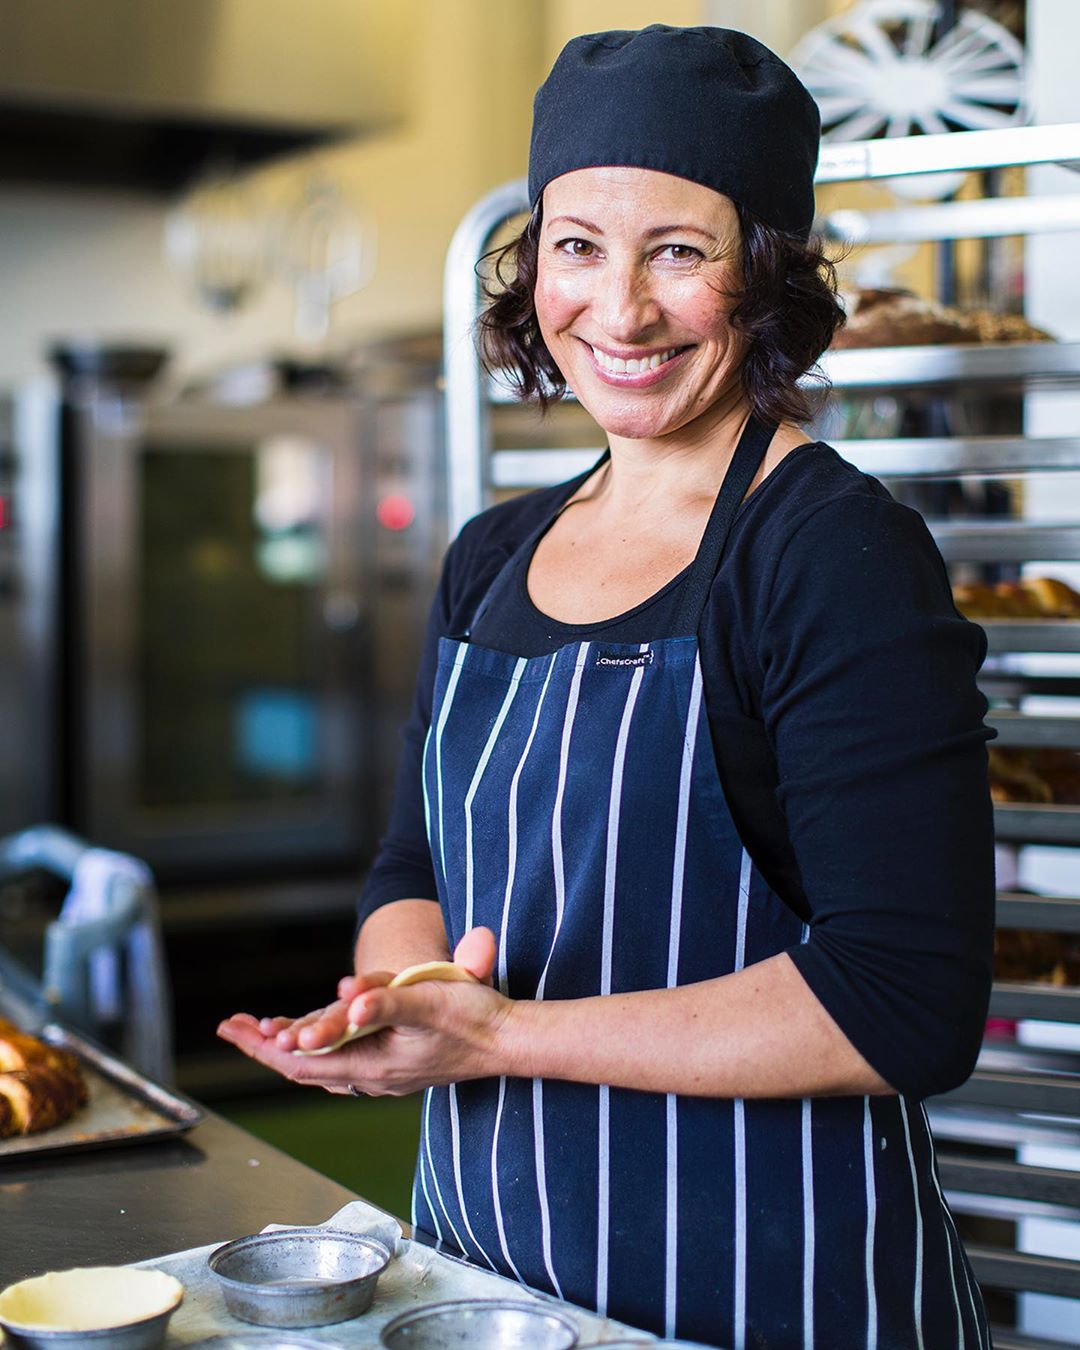 Cherie Lydon, founder of Wholegreen Bakery standing at a bench in her industrial kitchen, wearing a stripy blue apron, rolling out pie dough and smiling at the camera.